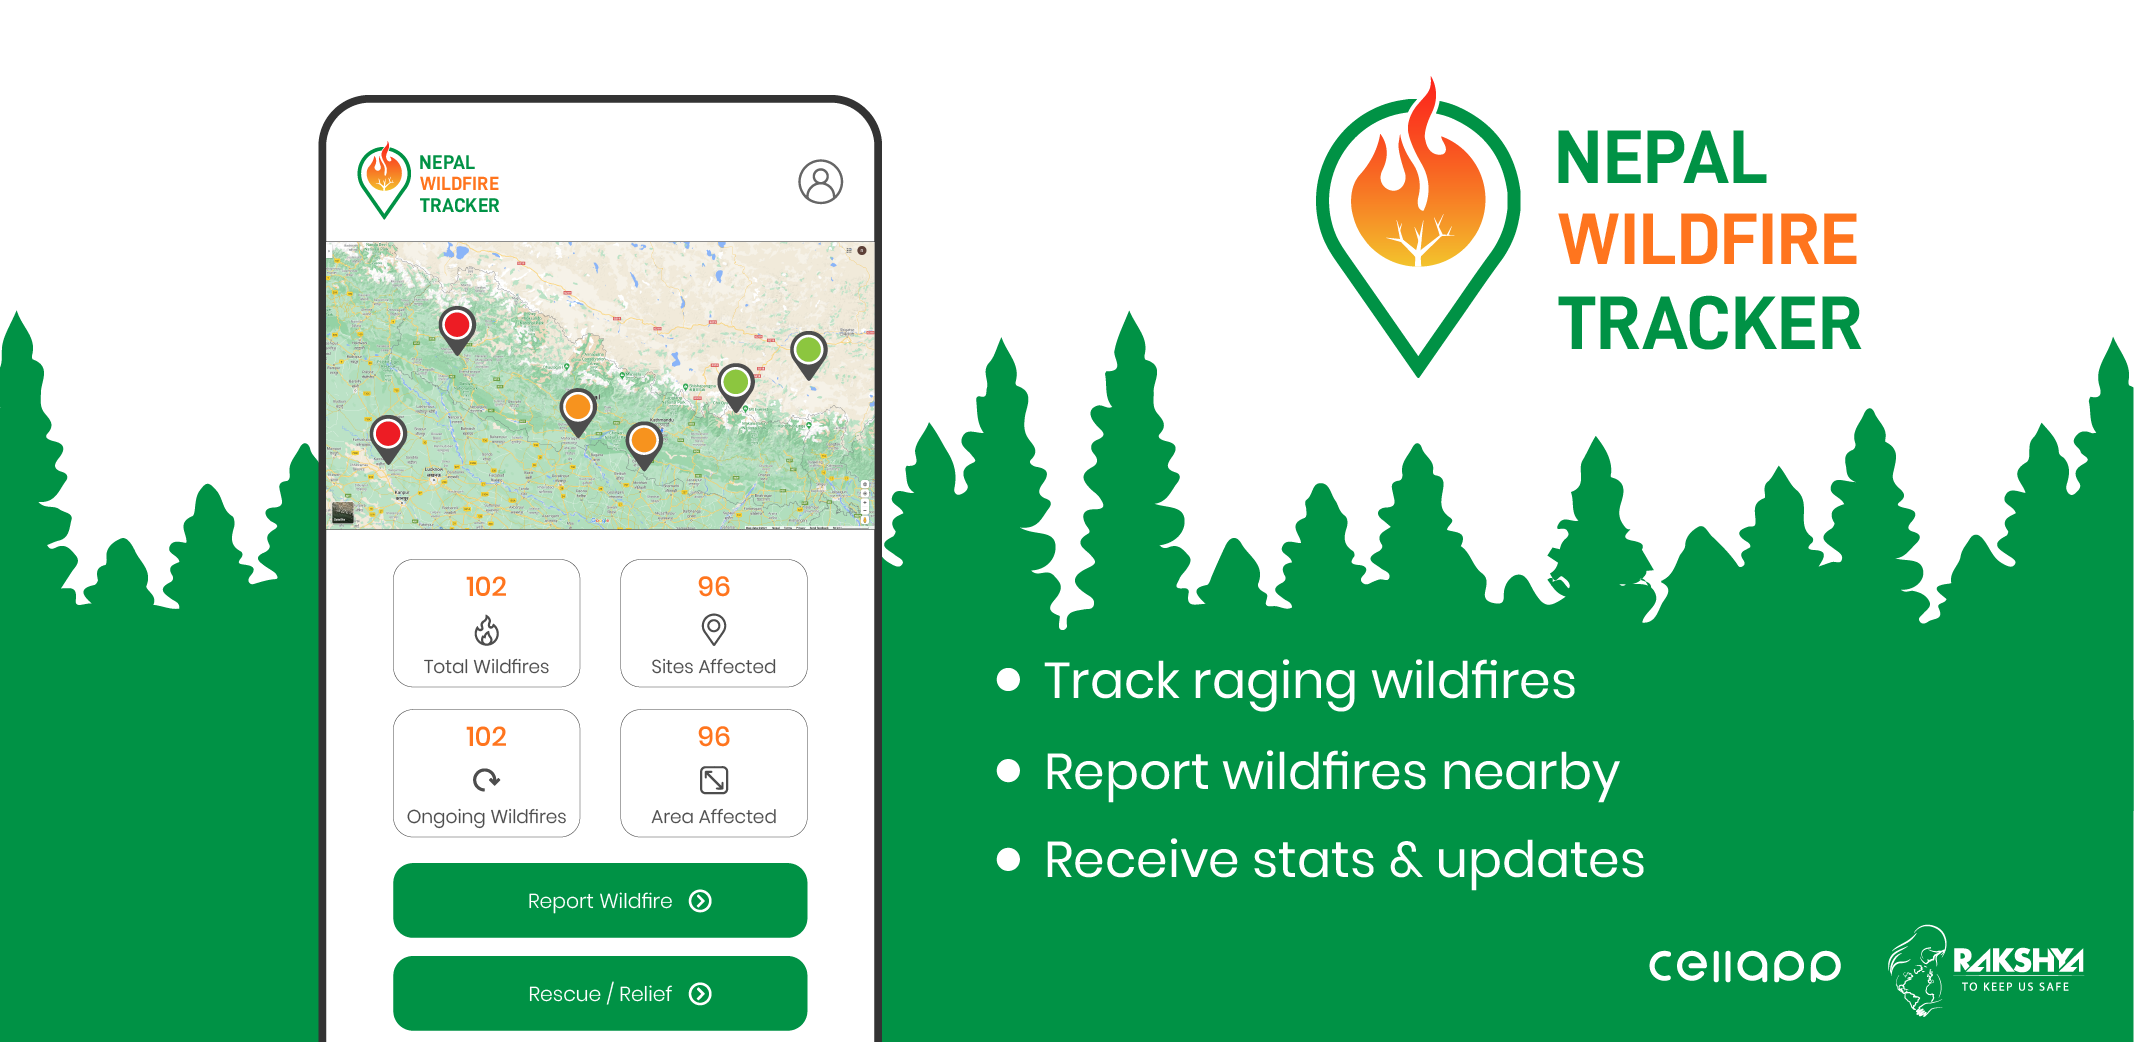 Wildfires in Nepal - Nepal Wildfire Tracker and Controlling system